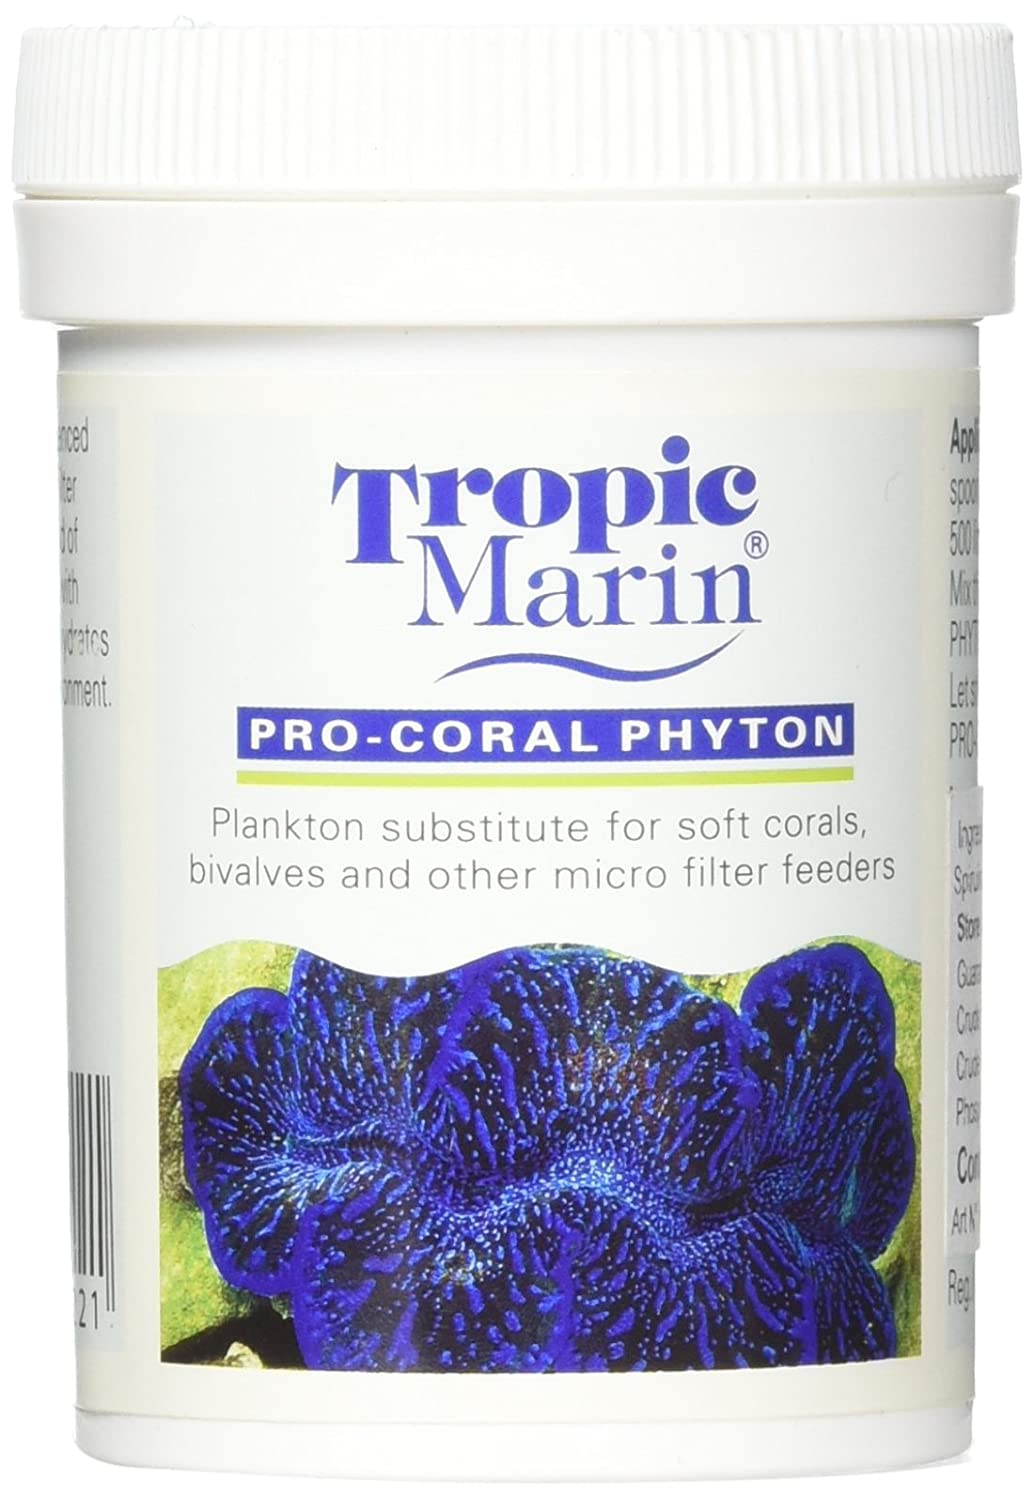 Tropic Marin Atm24622 Pro phyton de corail pour aquarium, 100 ml TopDawg Pet Supply 190512